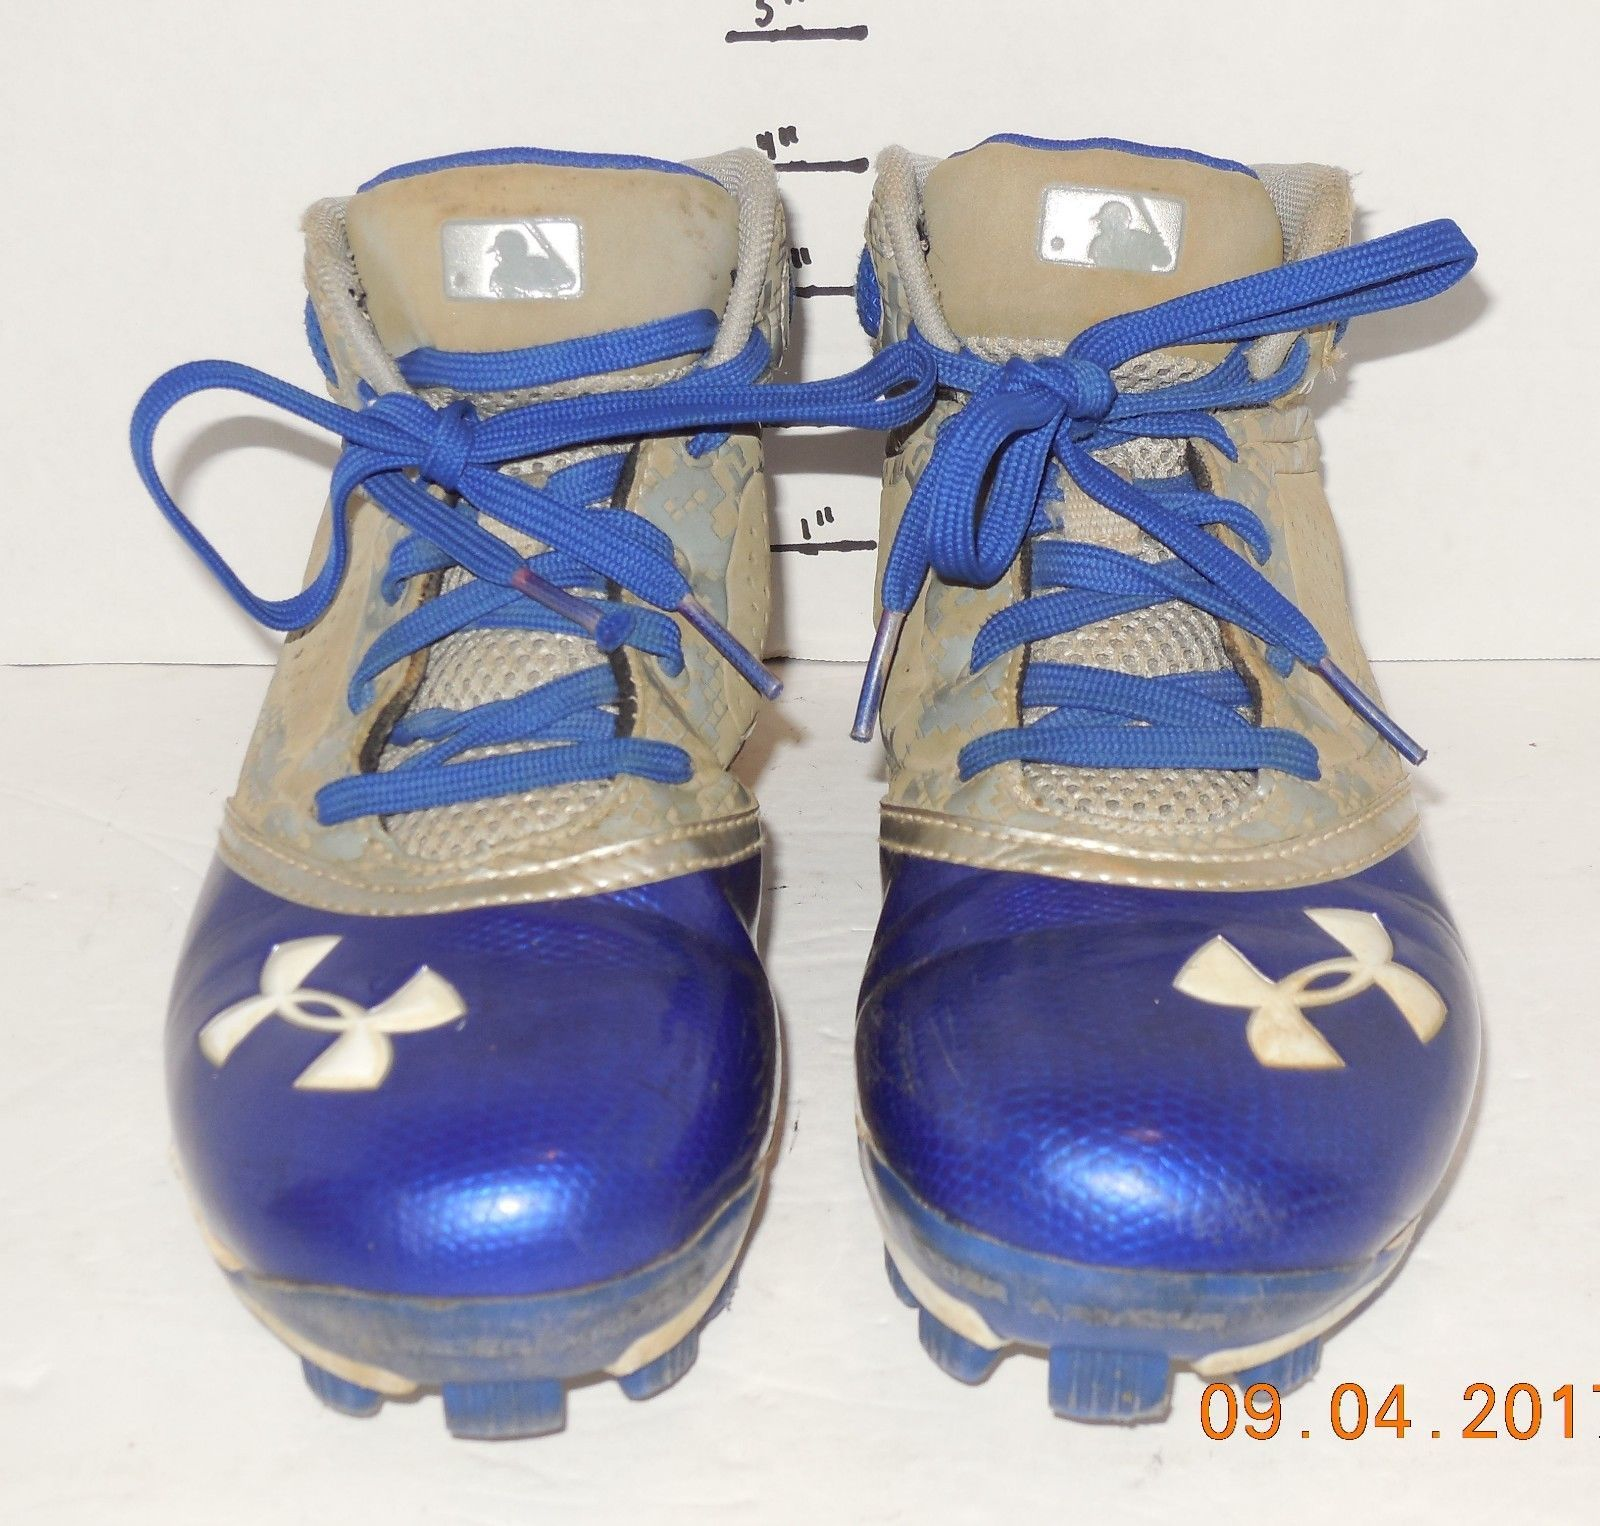 sports shoes 438de dbe55 57. 57. Previous. Under Armour Youth Boys Size 4.5 Blue and Grey Baseball  Cleats. Under Armour Youth Boys ...